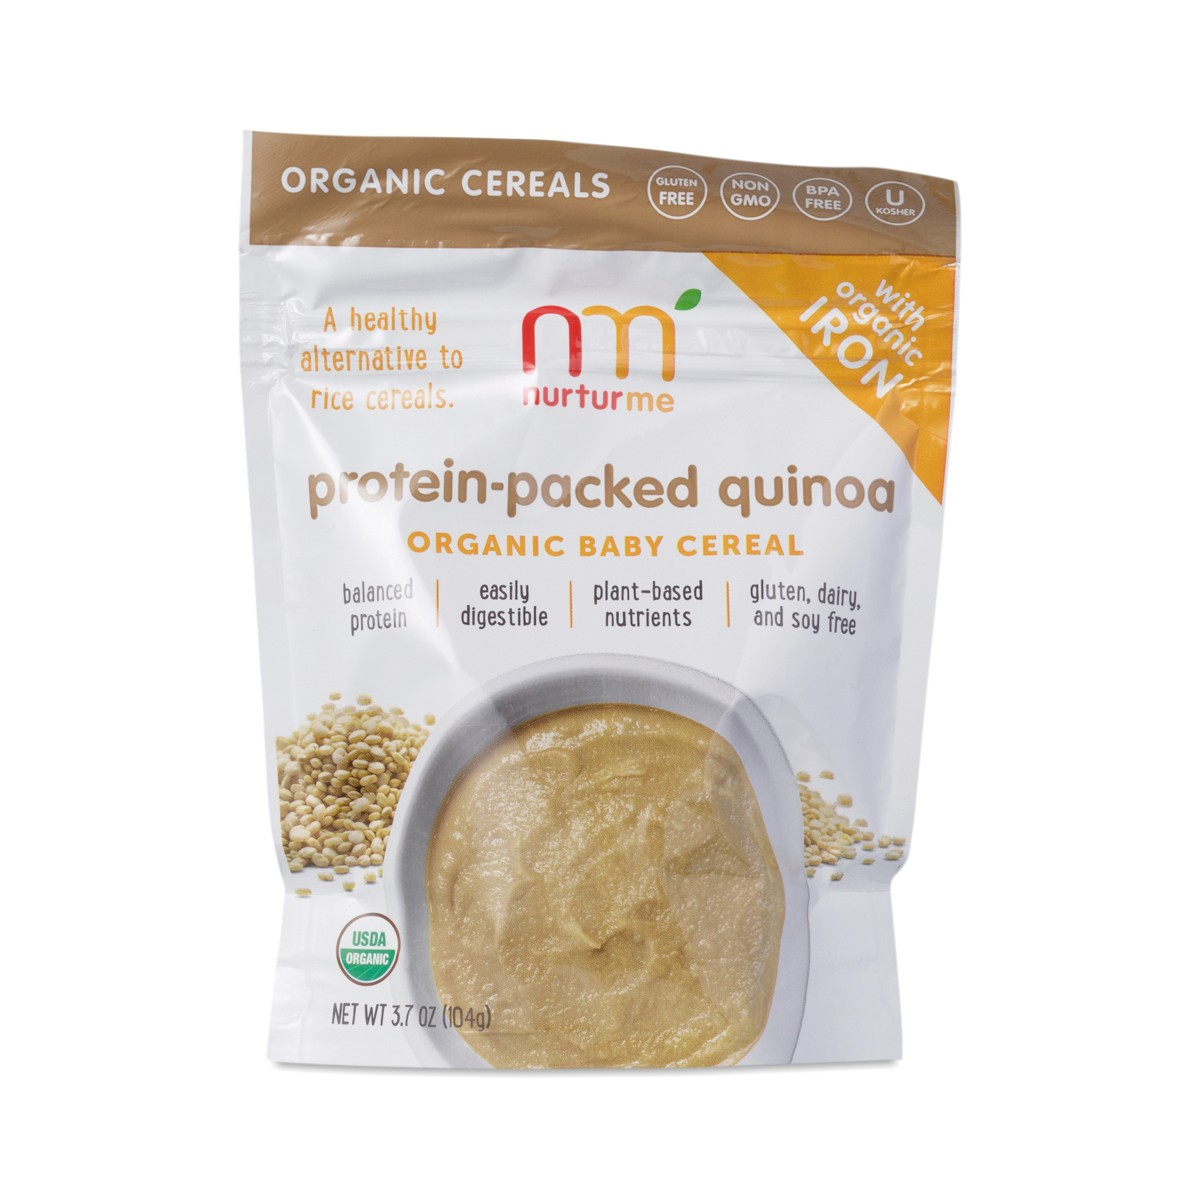 NurturMe Protein-Packed Quinoa Baby Cereal